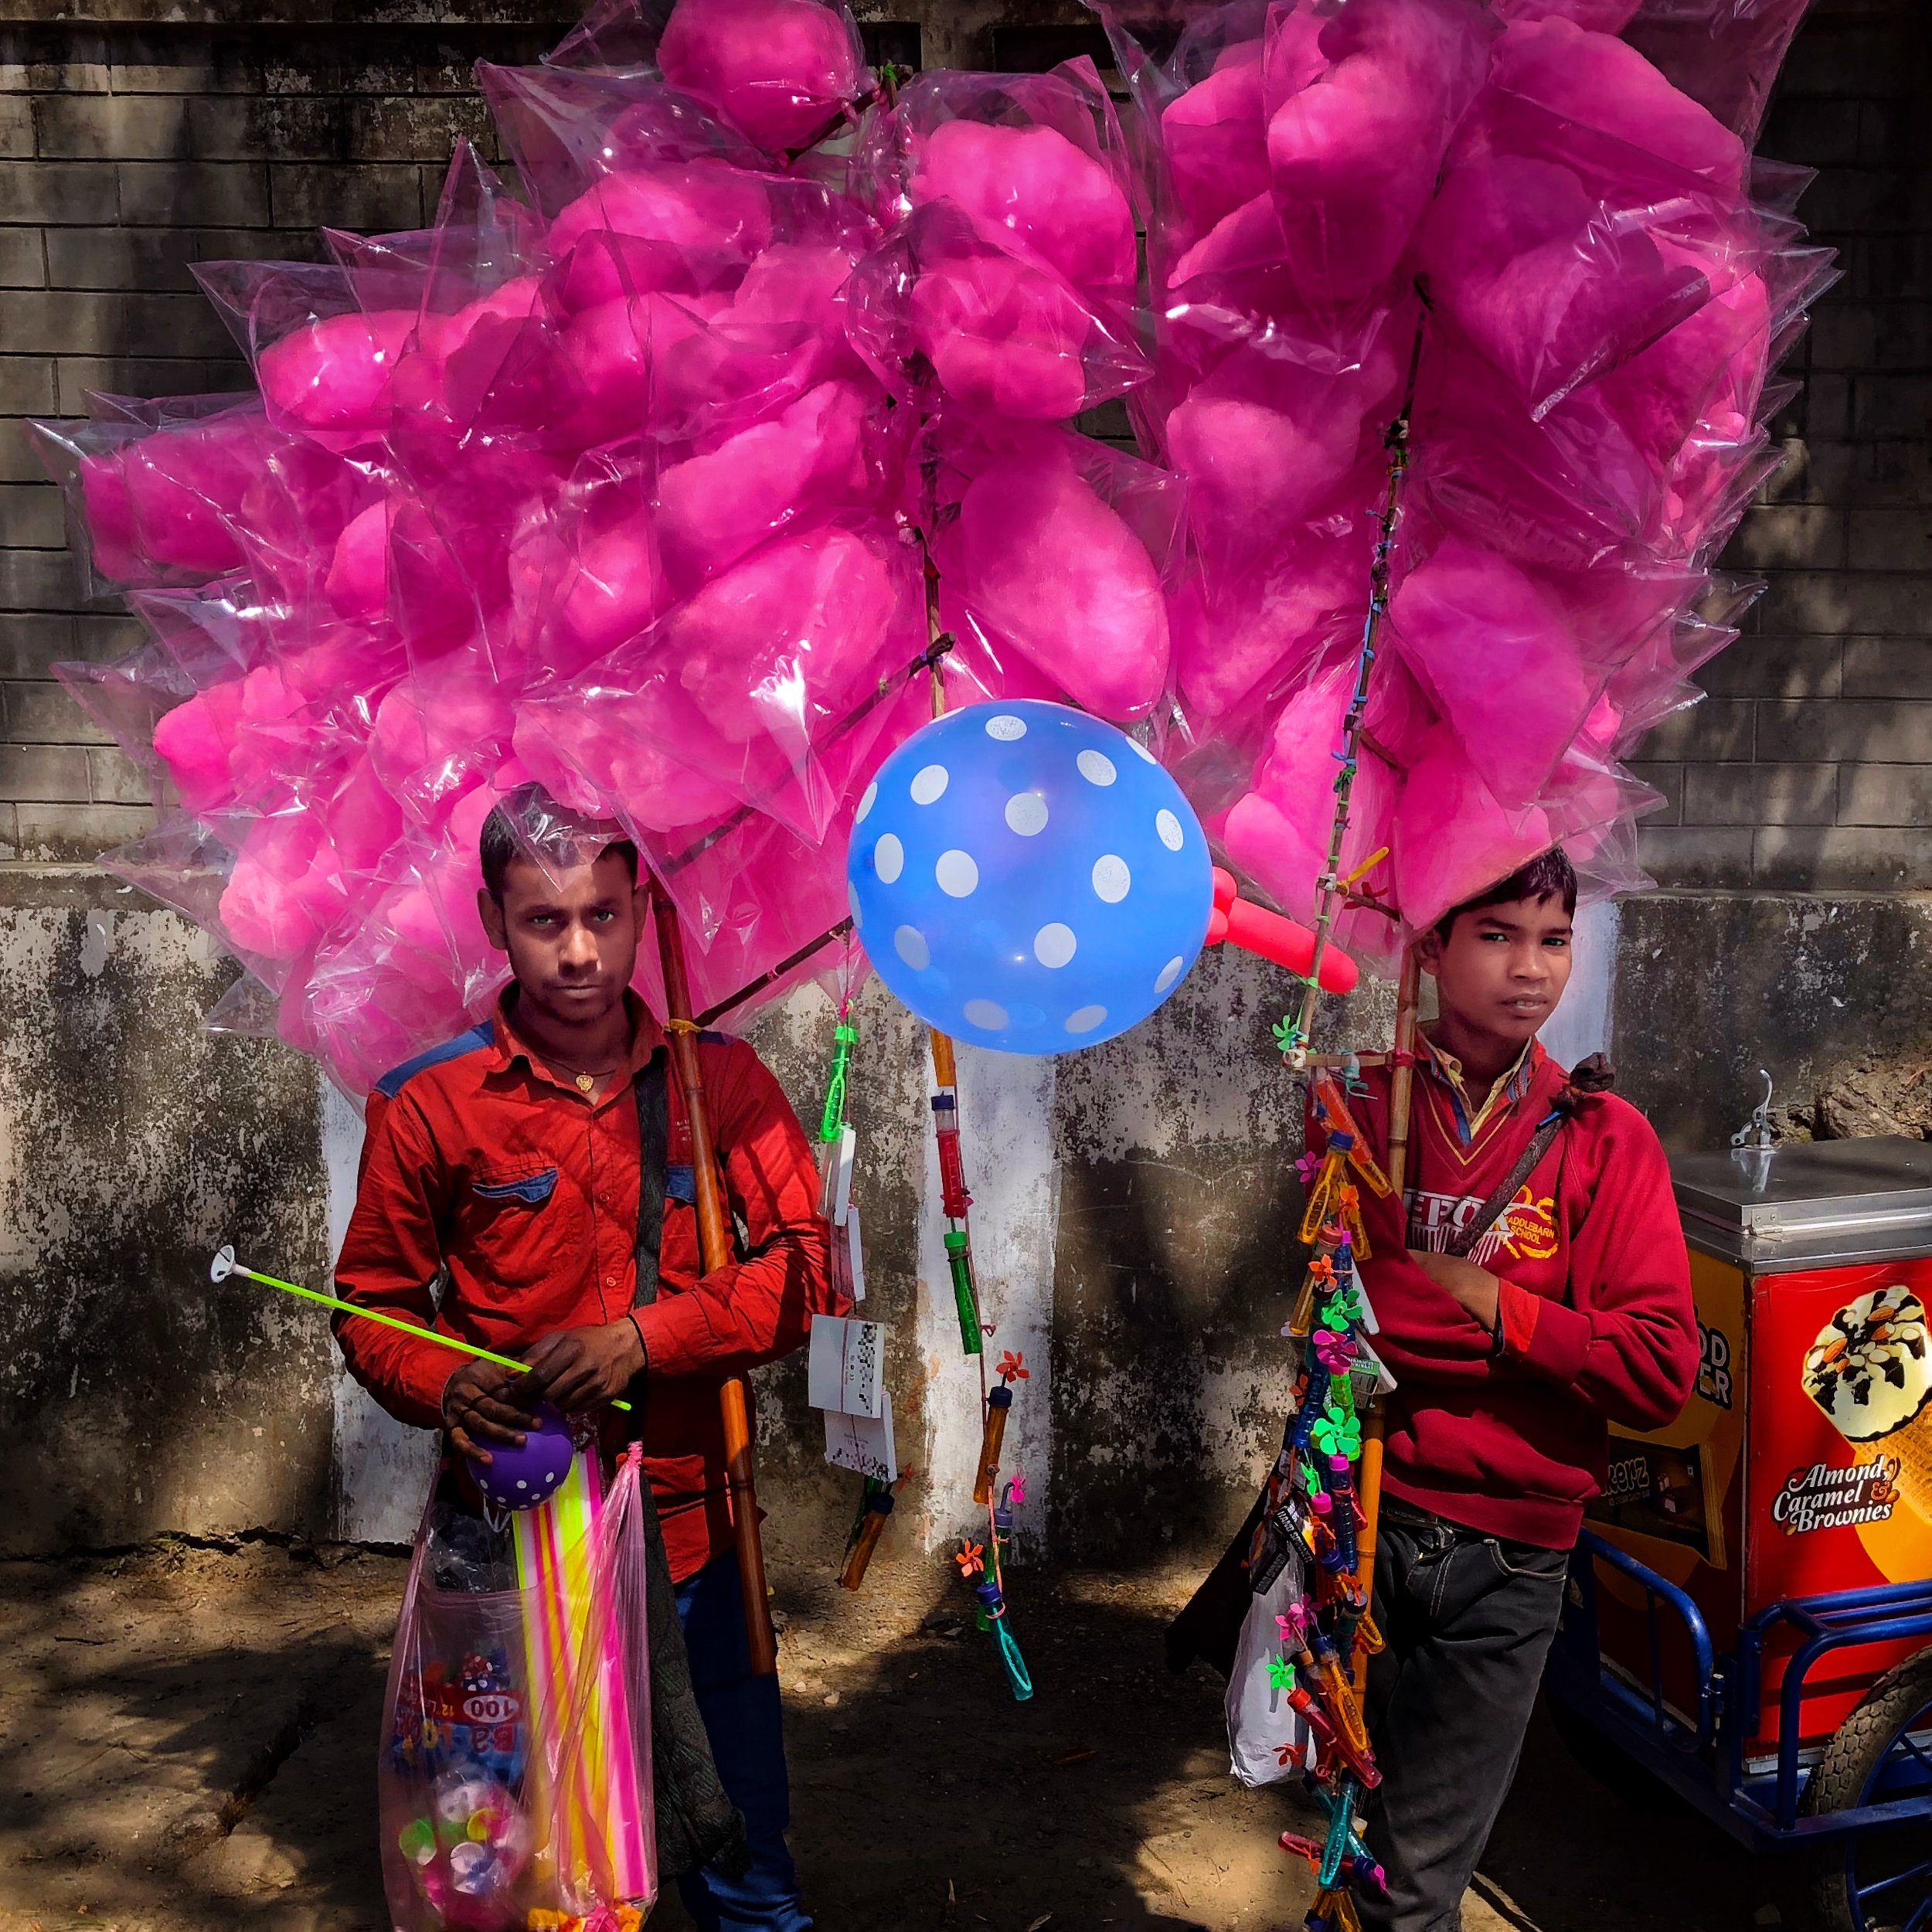 These candy-floss sellers looked how I felt